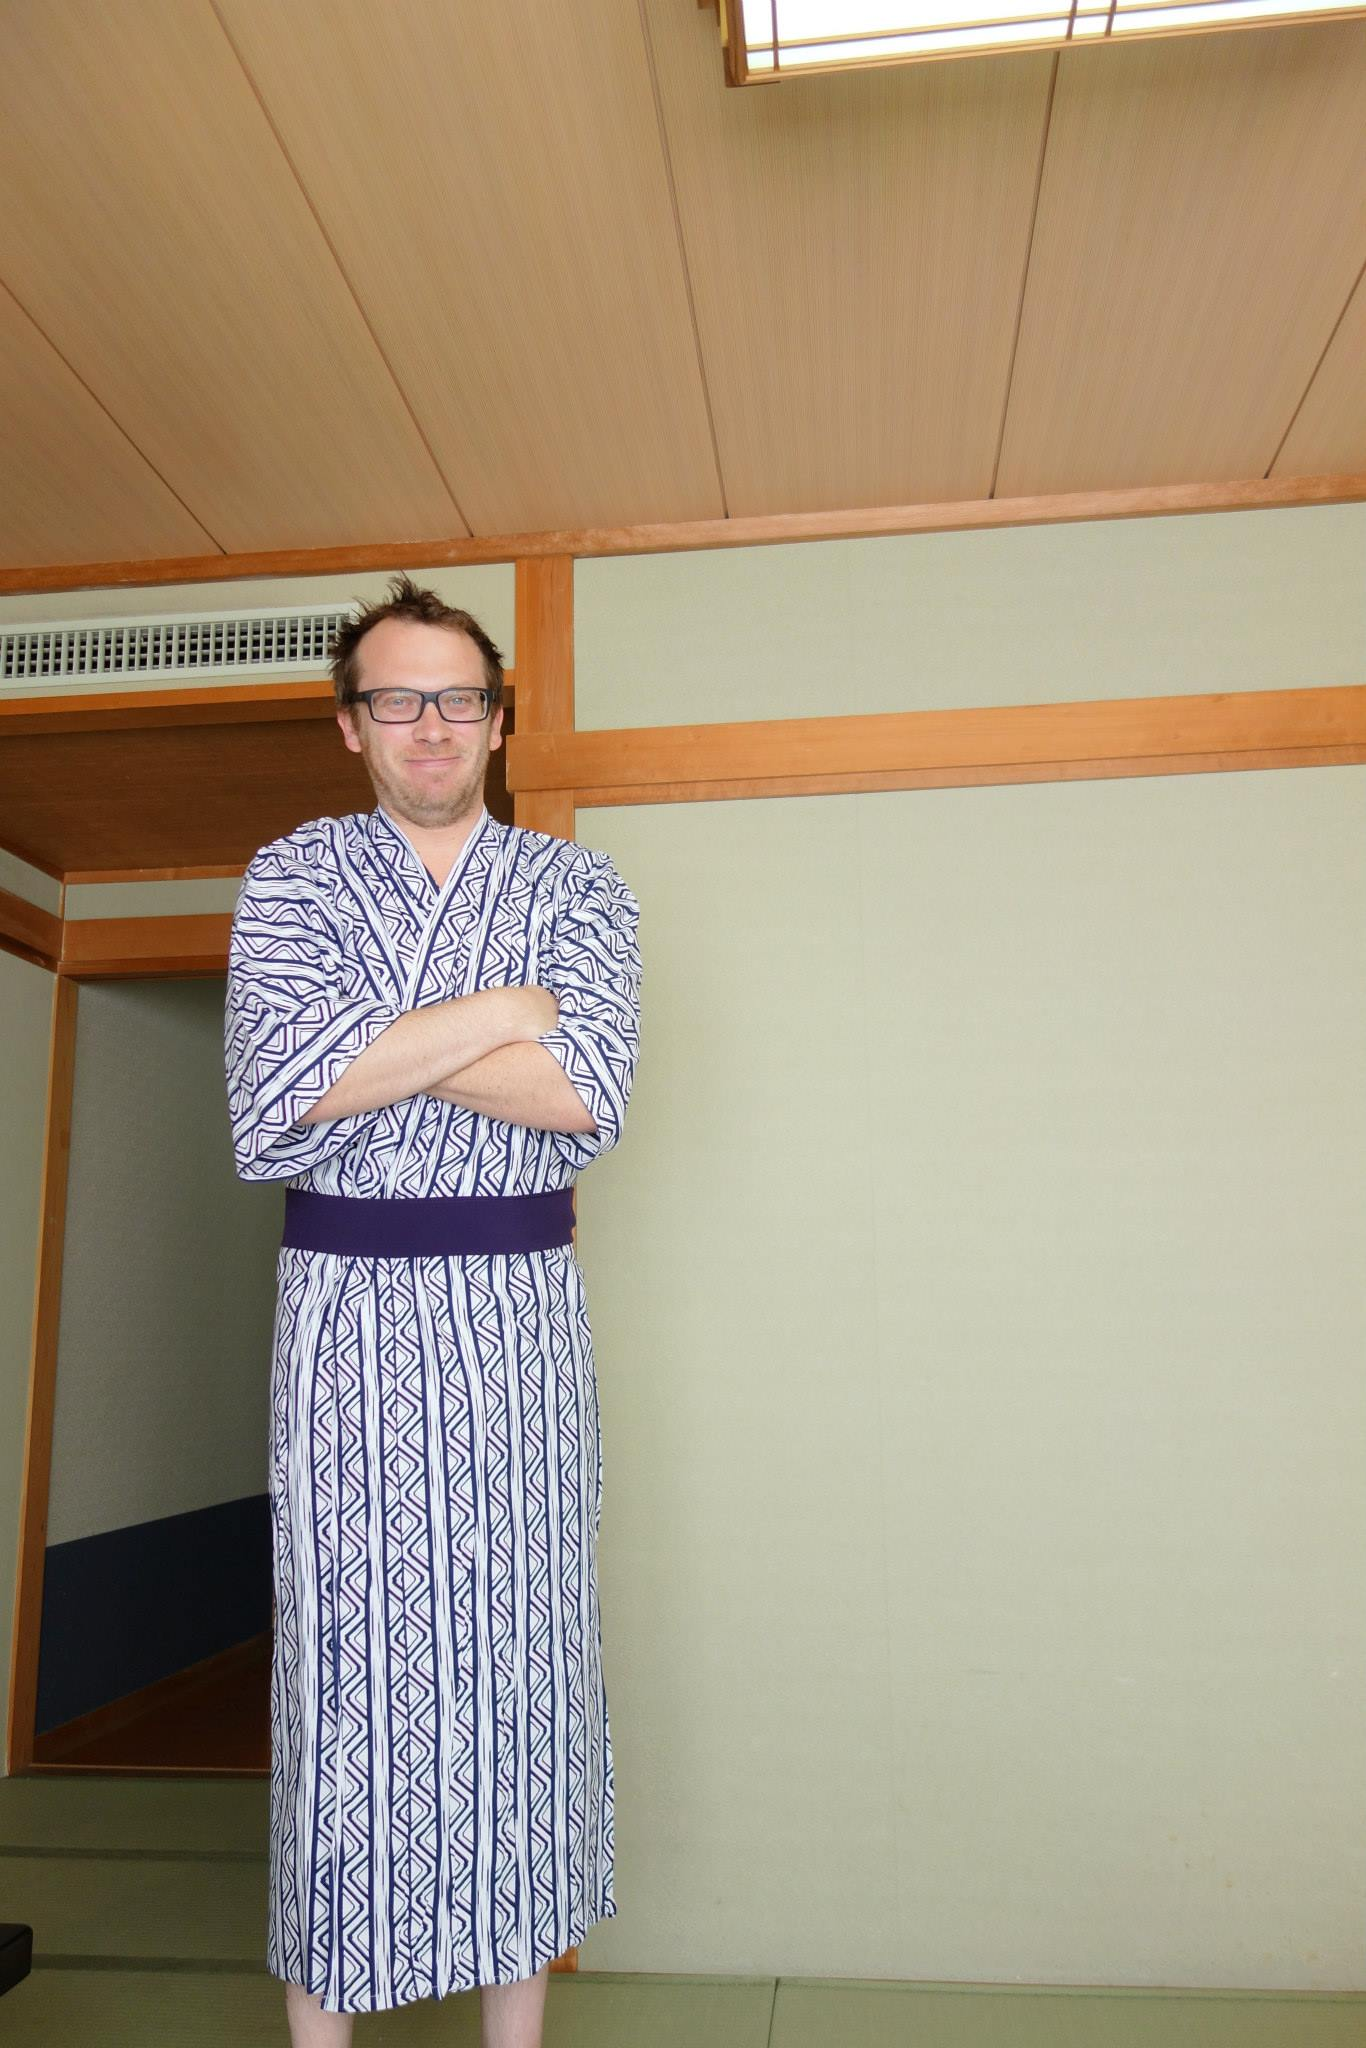 Staying at a ryokan in our yakatas